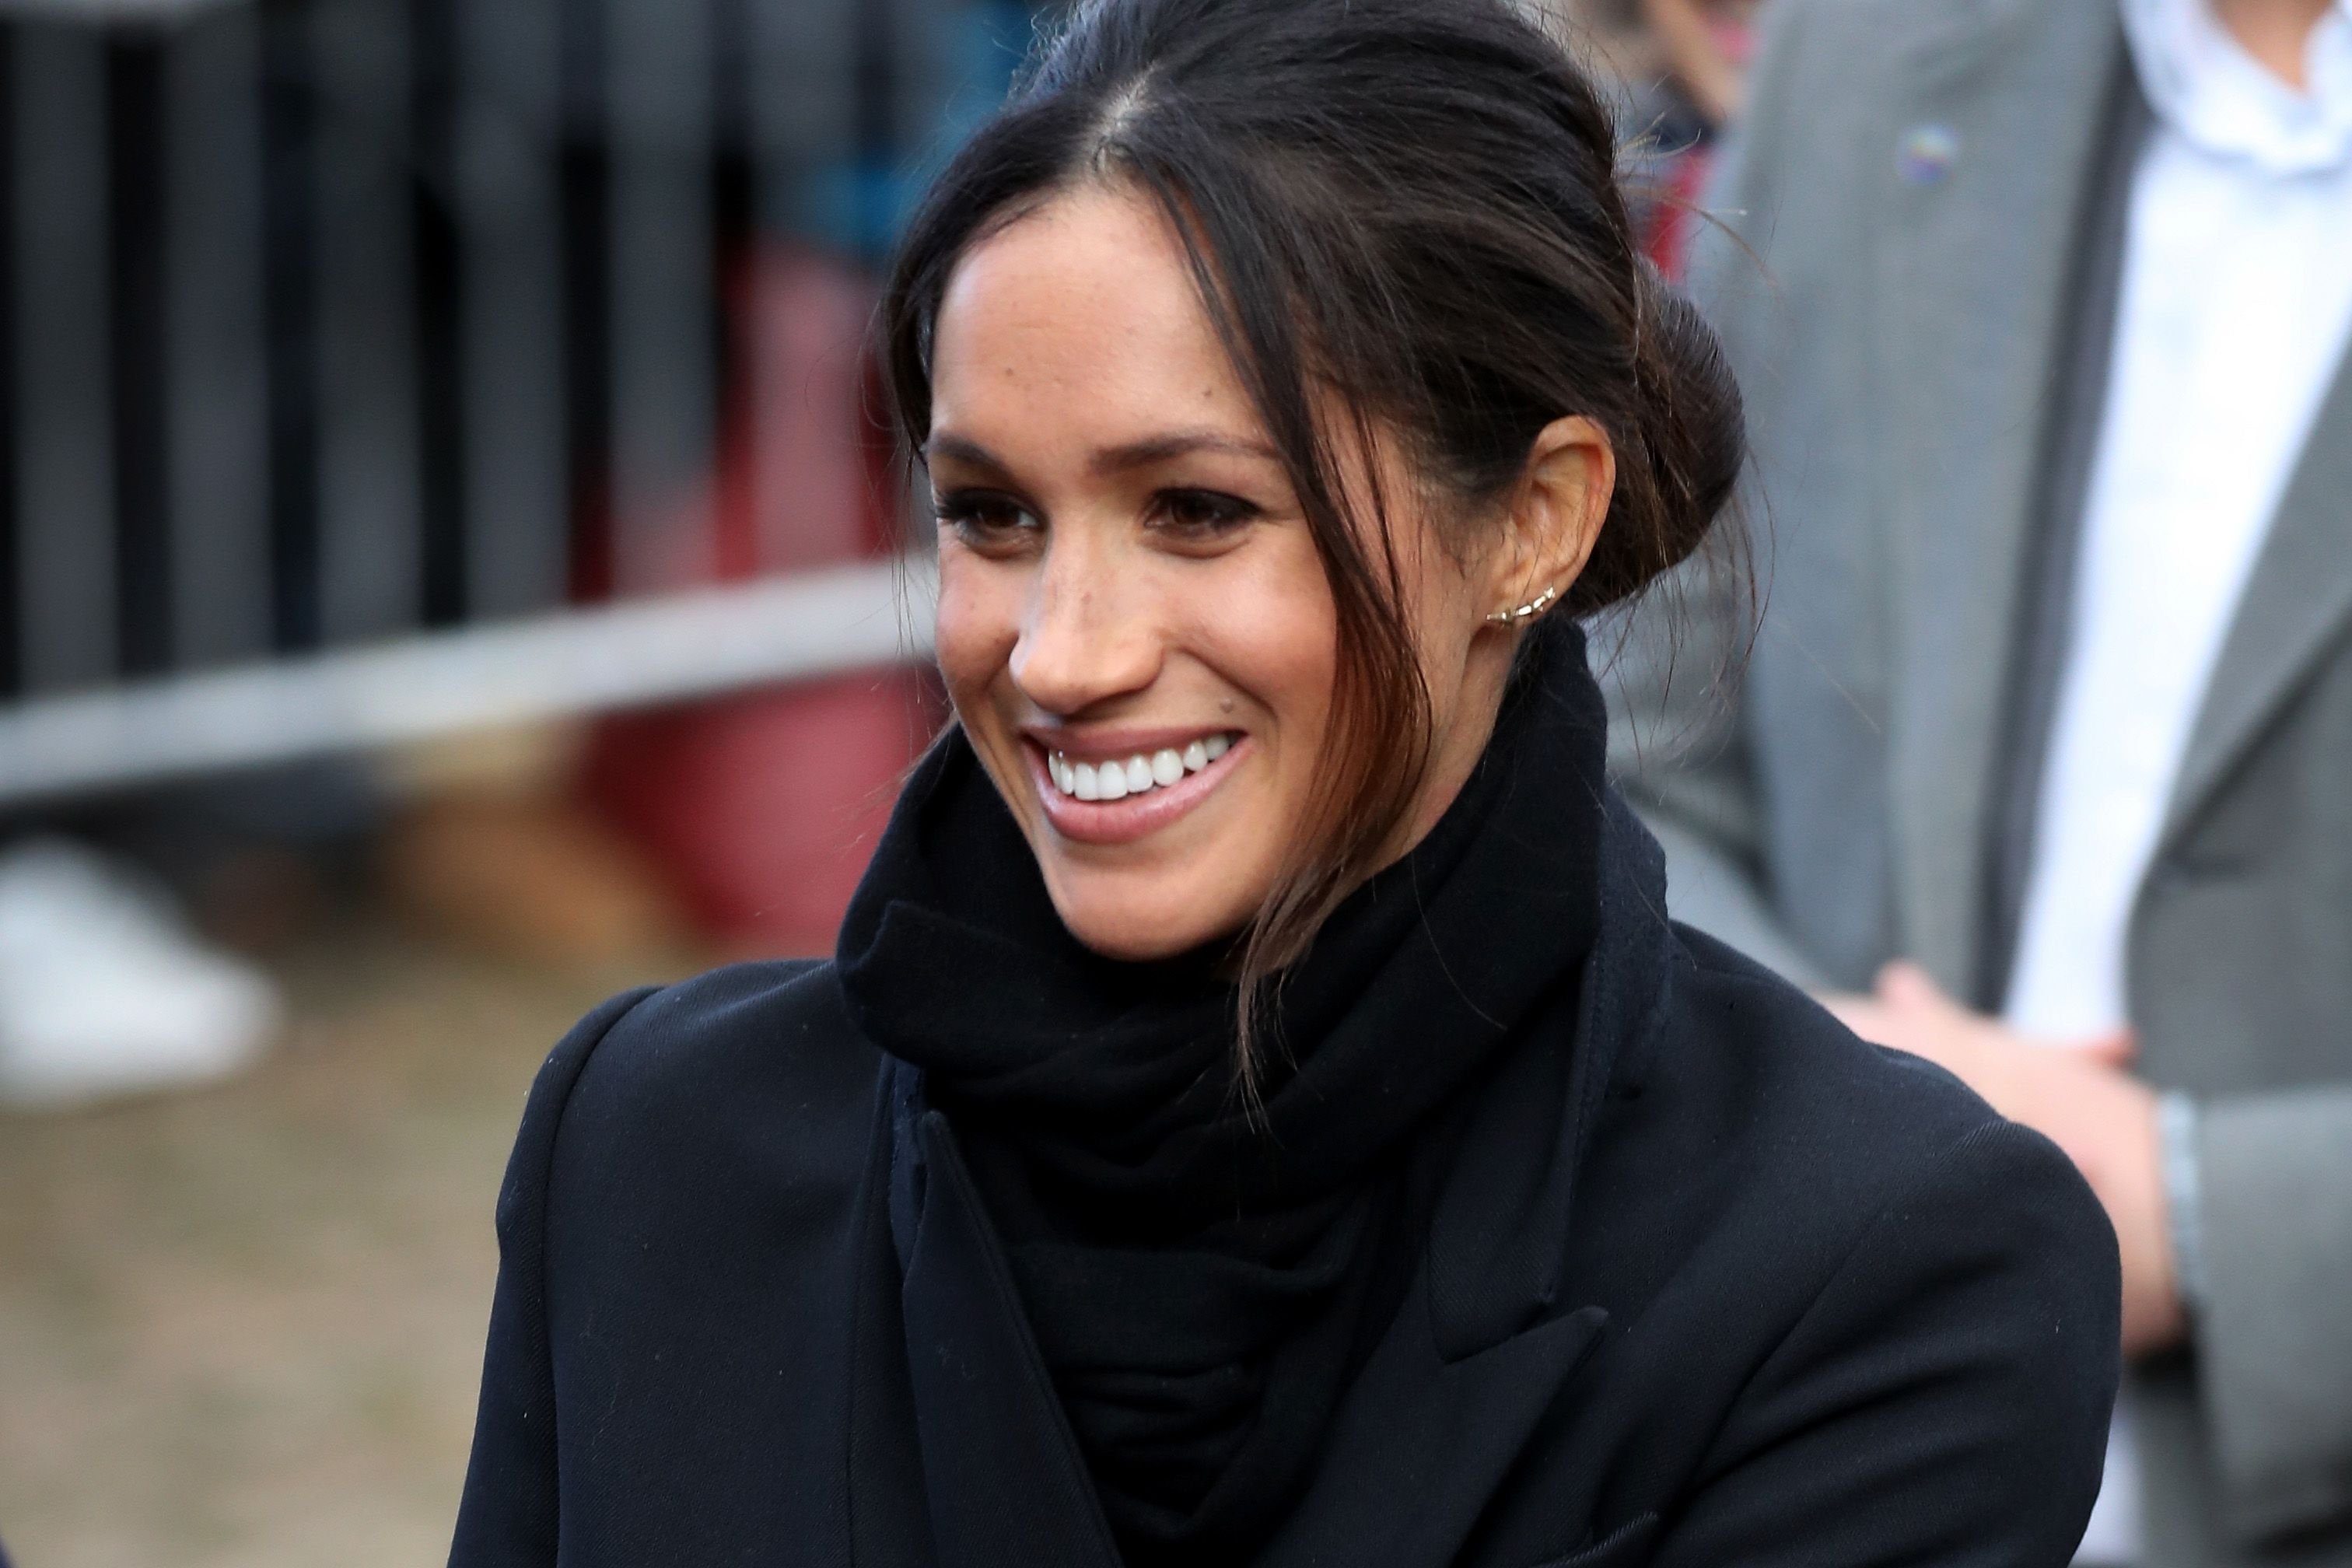 The Duchess of Sussex's maternity leave officially ends next week